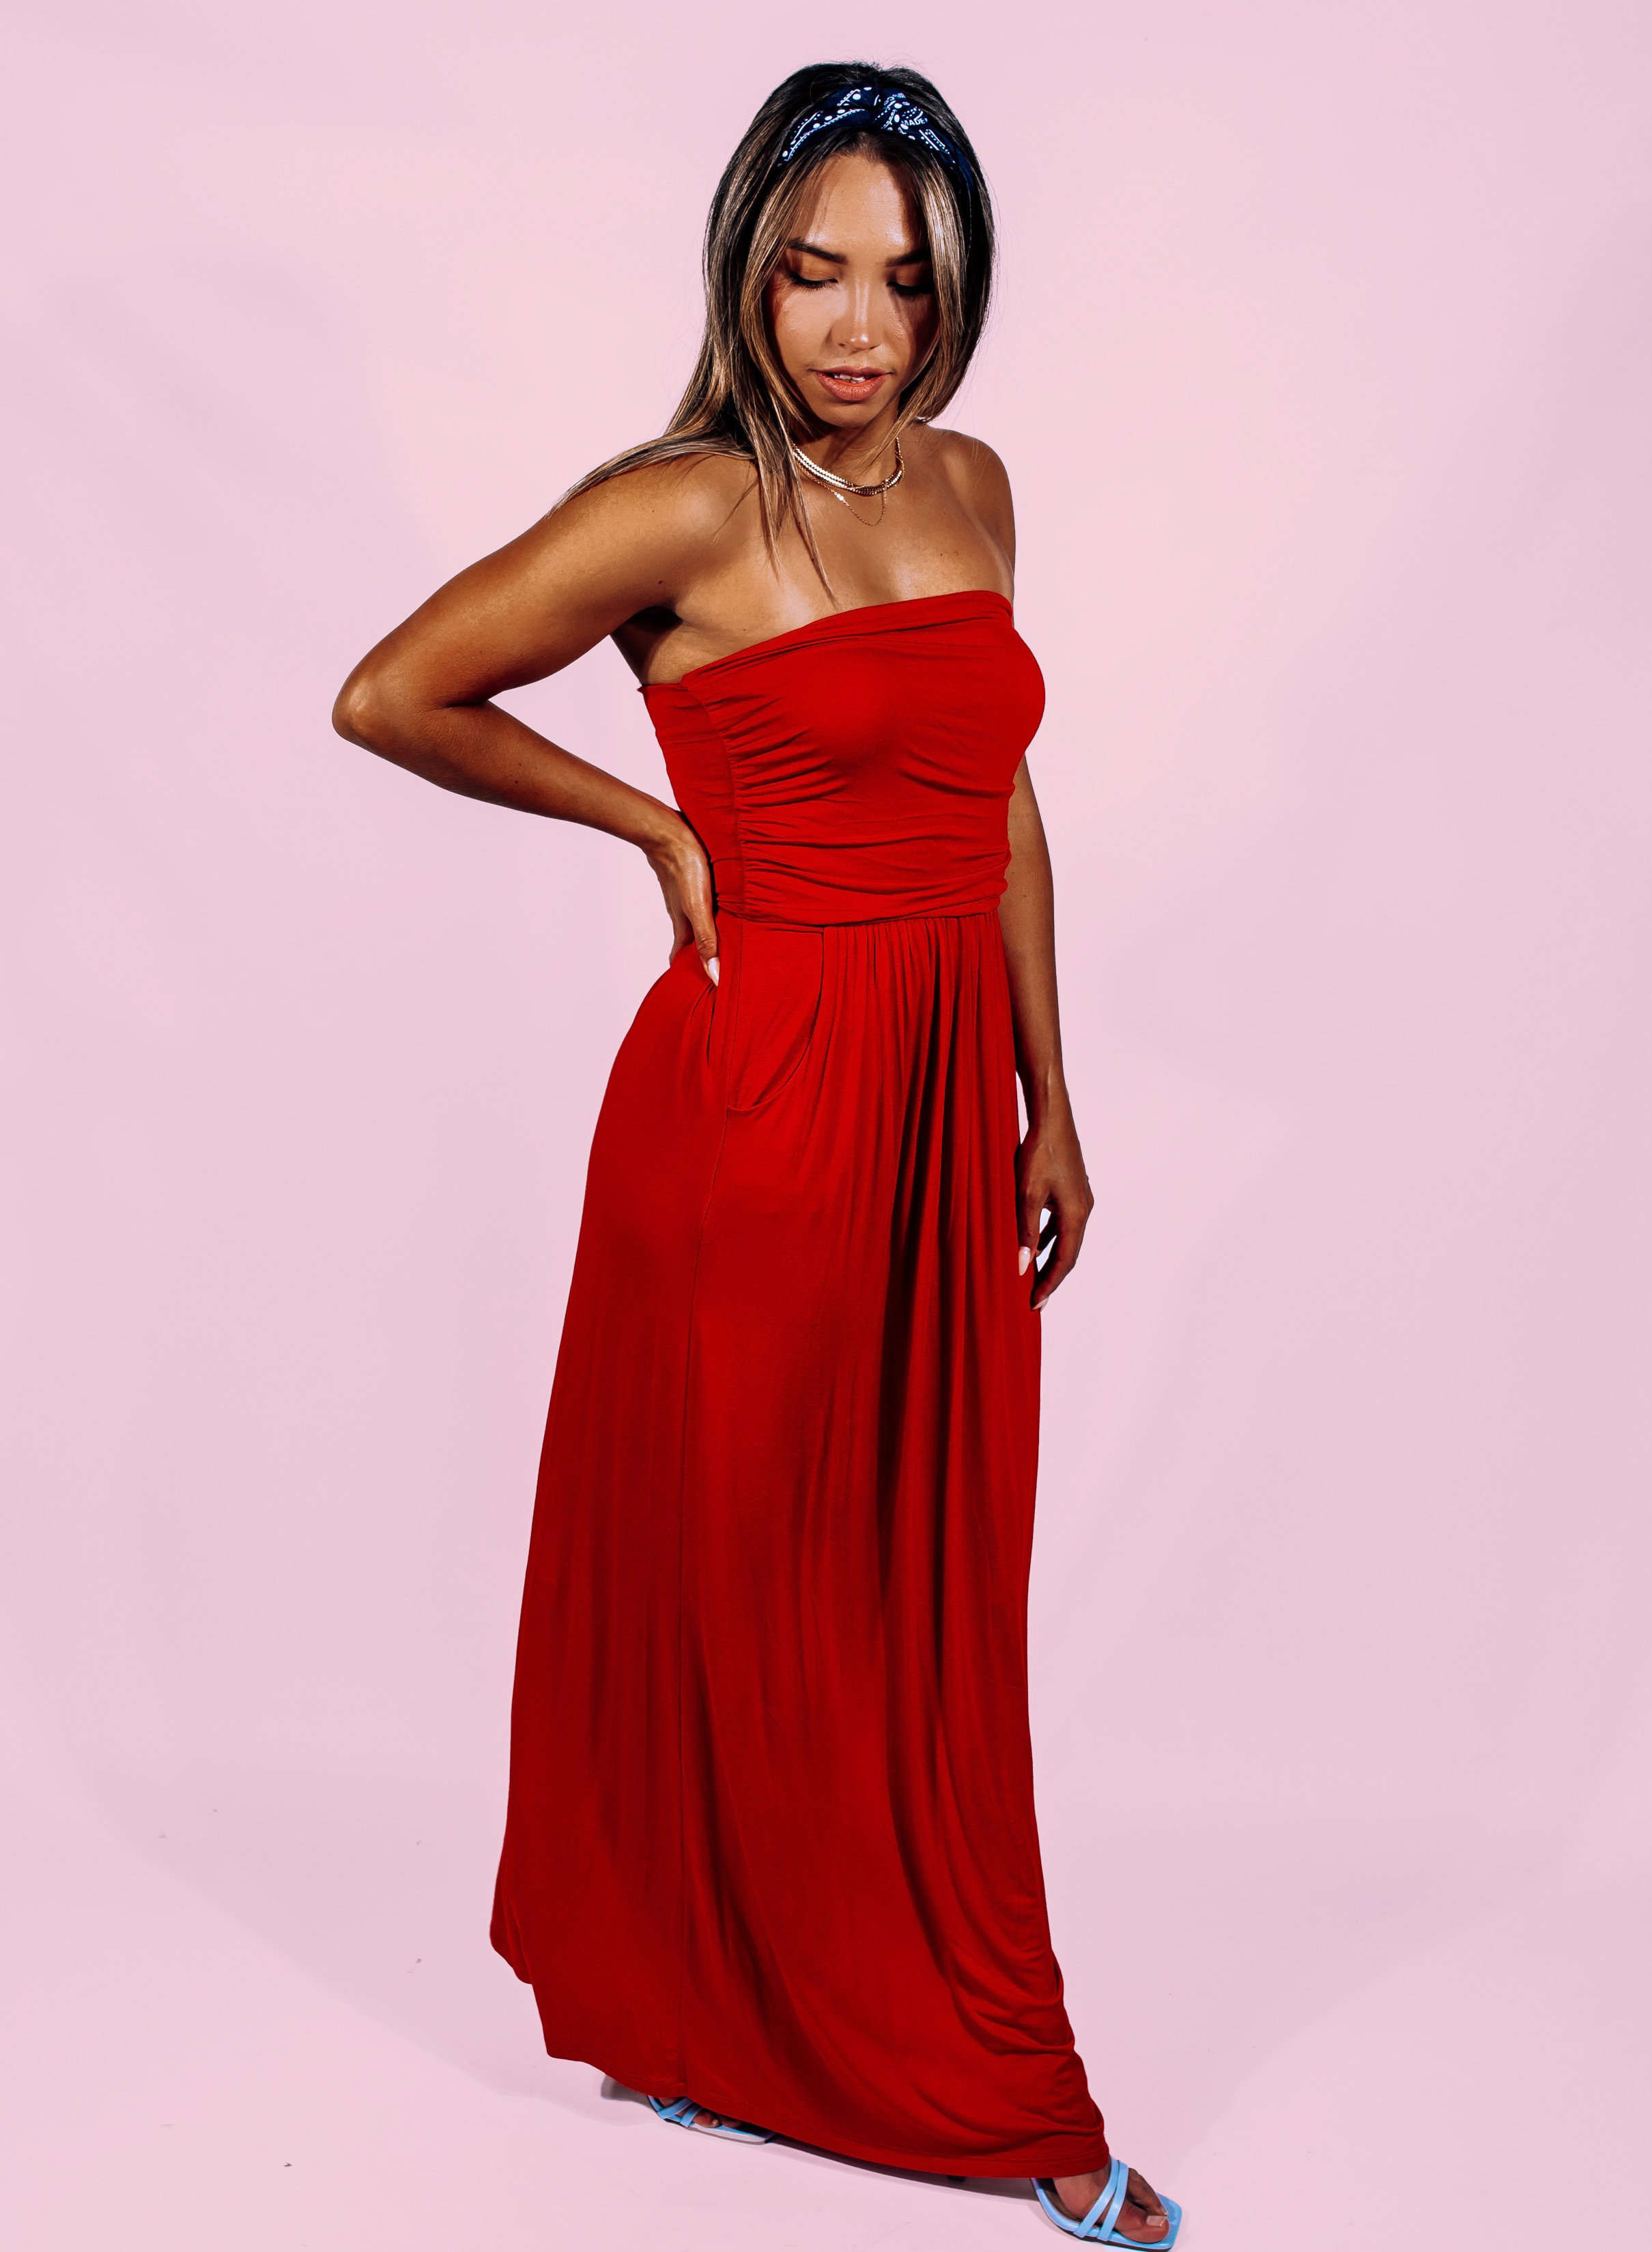 """RED TUBE TOP MAXI DRESS WITH POCKETS. 94% RAYON MODAL, 6% SPANDEX. AMANDA IS 5'7"""" A SIZE 2, WEARING A SMALL. FRANCELINE IS A SIZE 16, BUST 40, WEARING A LARGE. DALLAN IS 5'7"""" SIZE 4/6 WEARING A SMALL. S 0-6 M 6-12 L 12-18"""